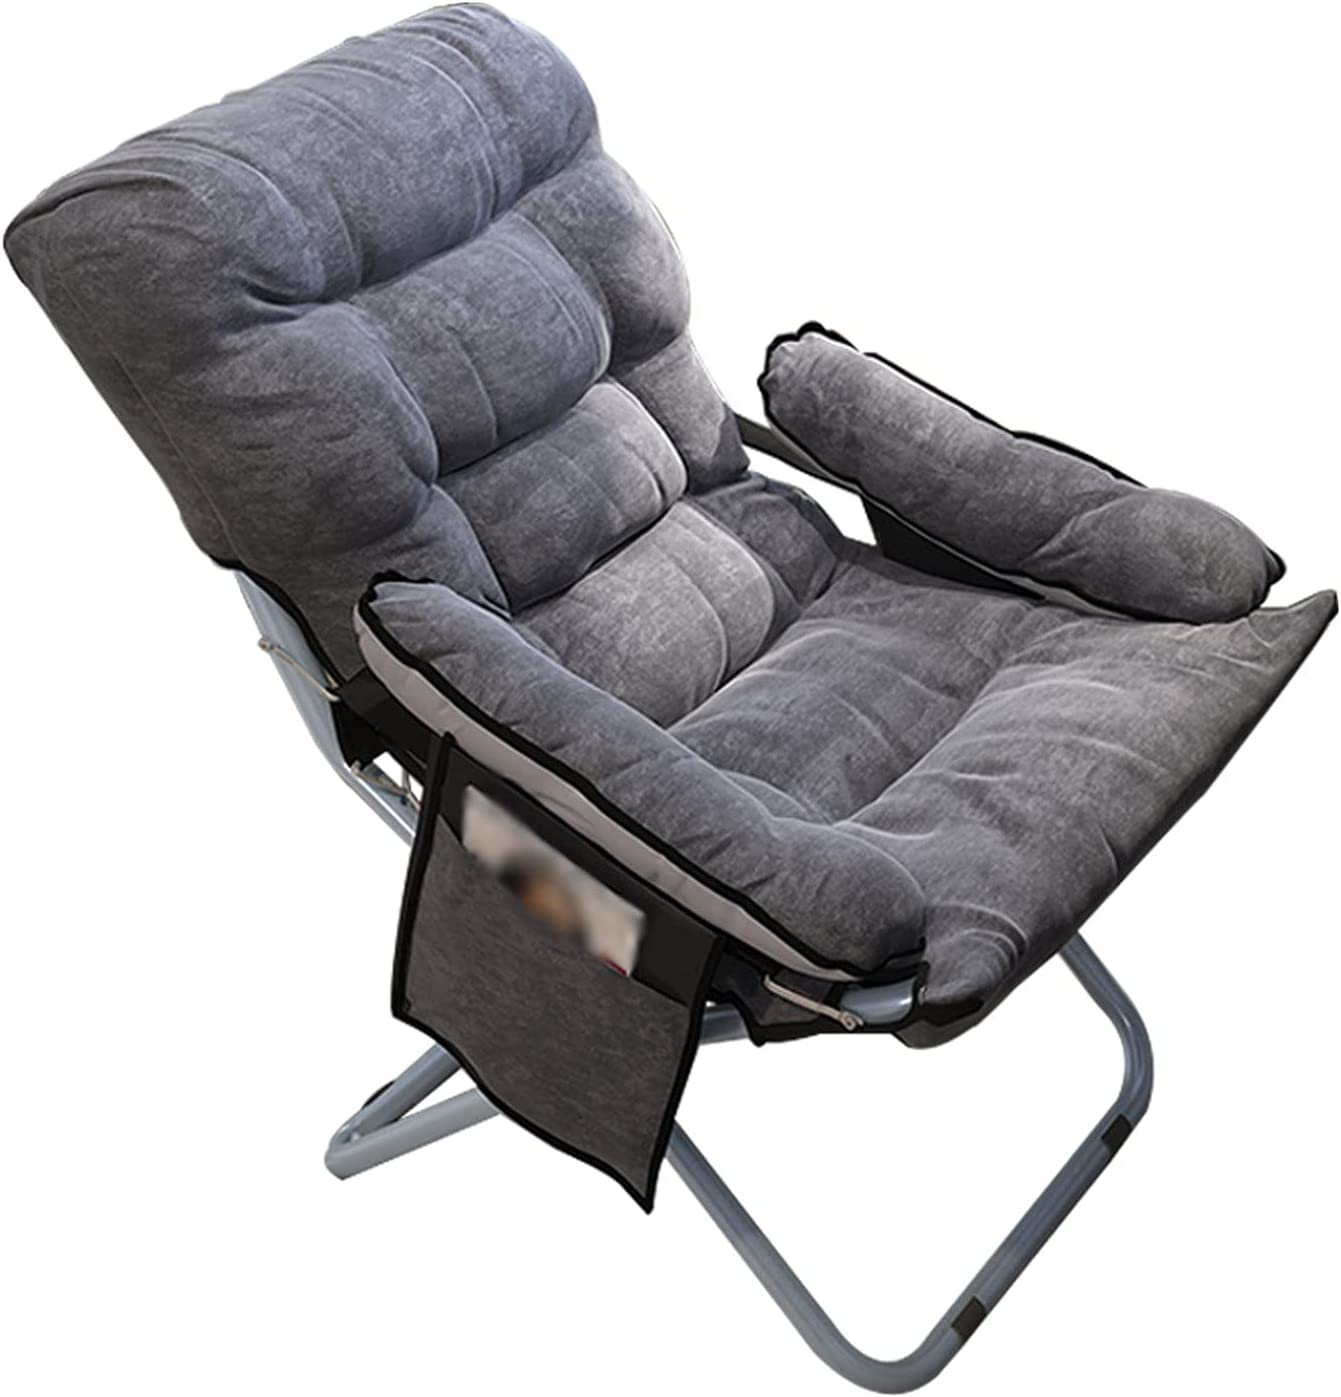 HZYDD Chair Home Leisure Chicago Clearance SALE! Limited time! Mall Balcony Lazy Sofa Lunch Break Siesta